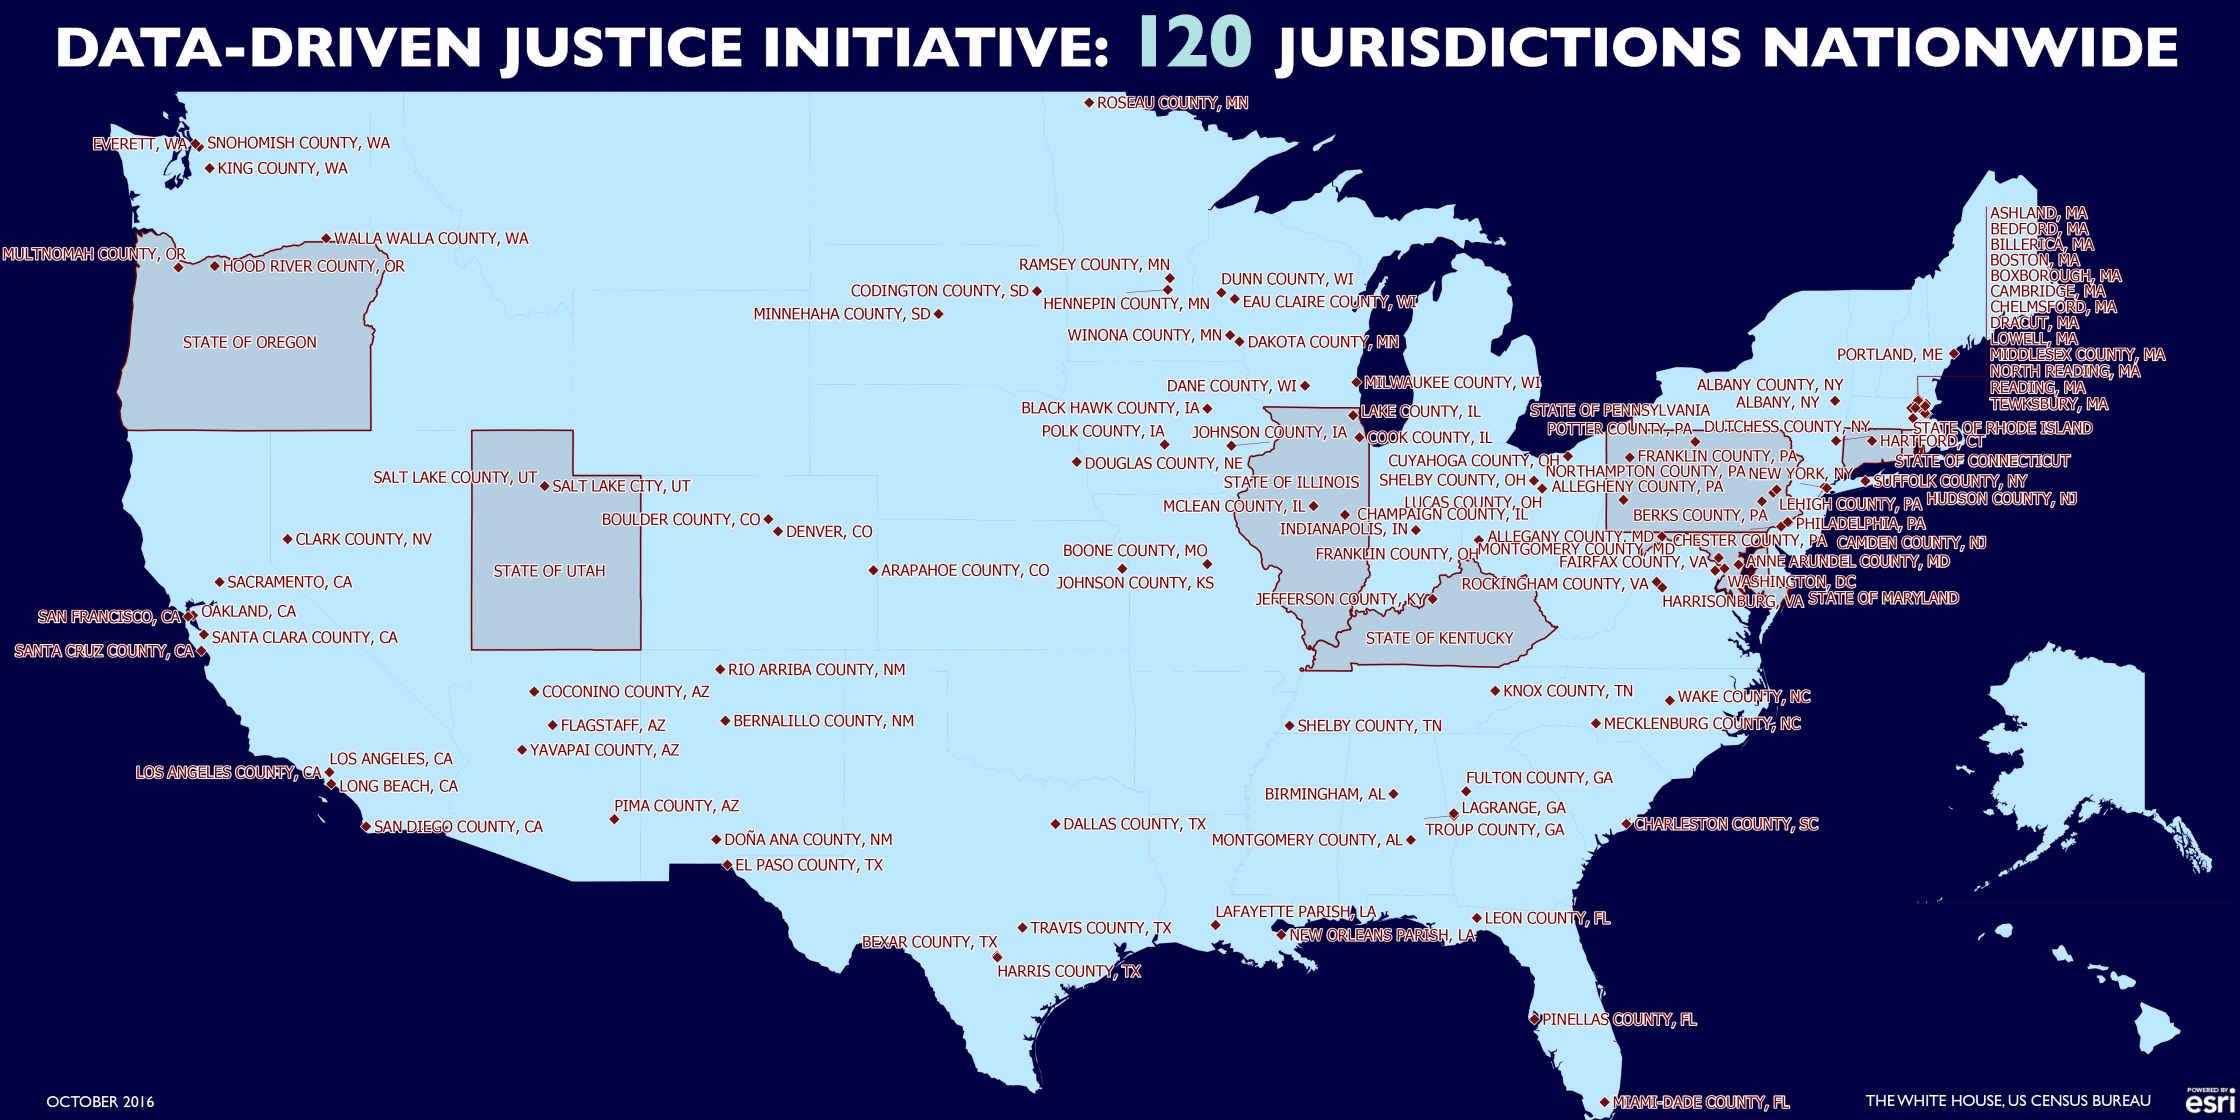 US Map: Data-Driven Justice Initiative: 120 Jurisdictions Nationwide